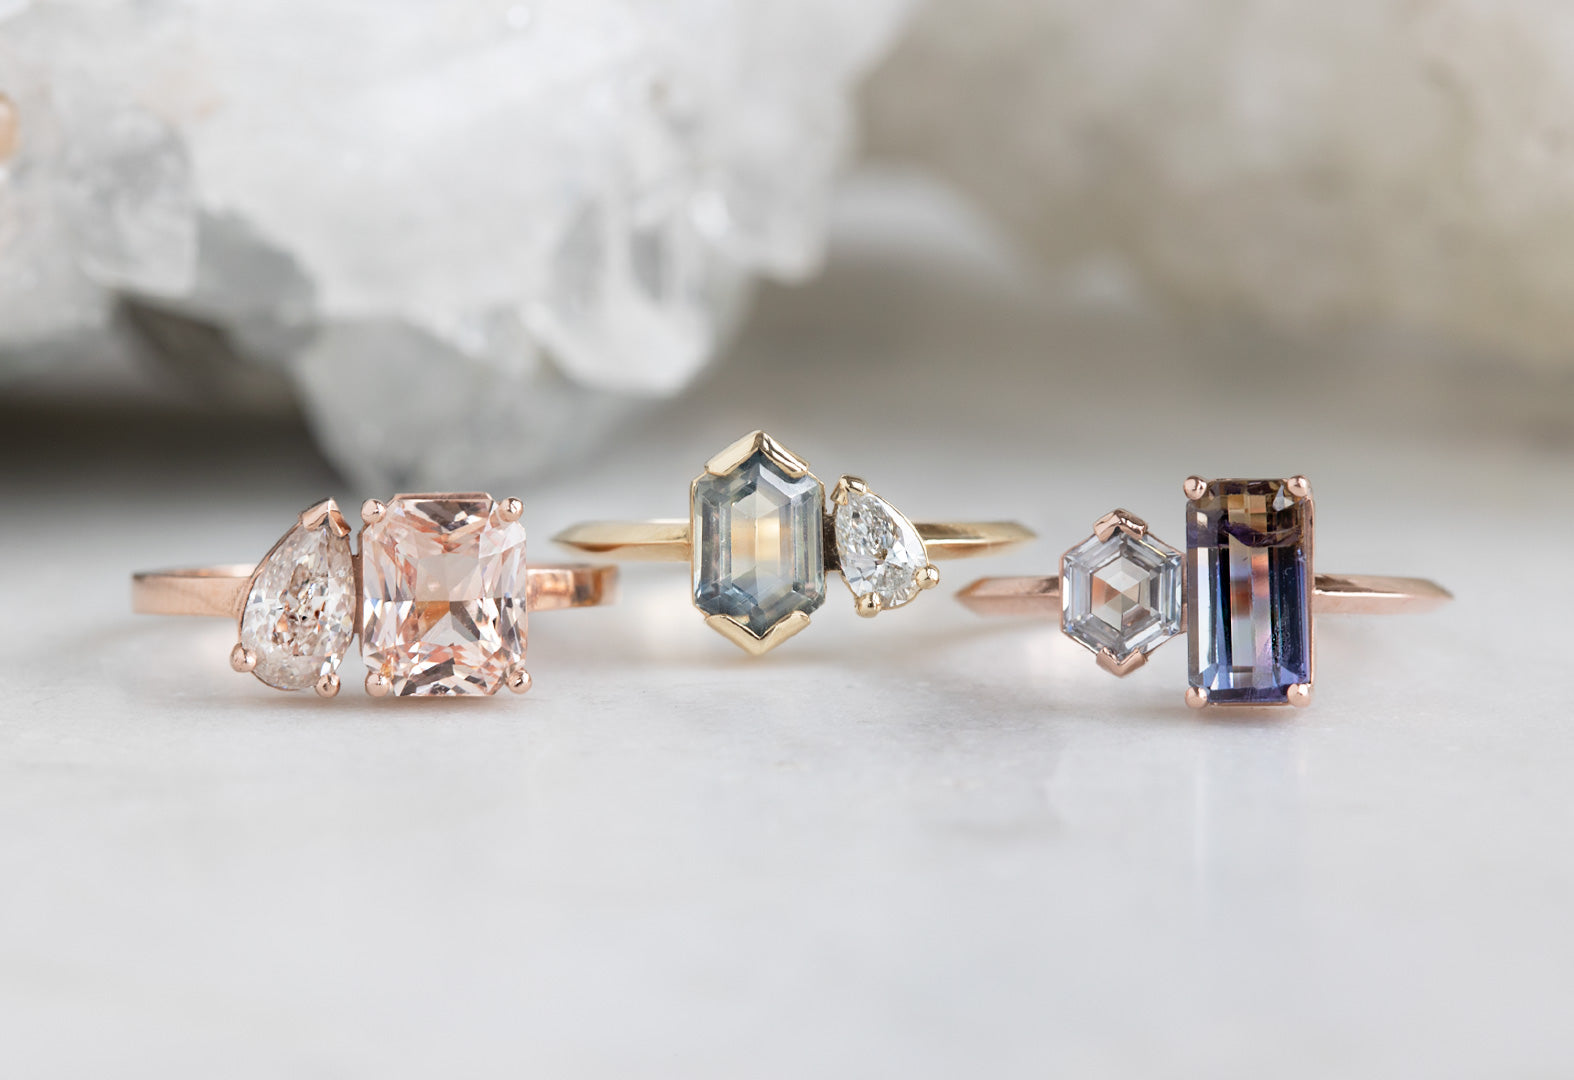 The 'You & Me' Engagement Rings